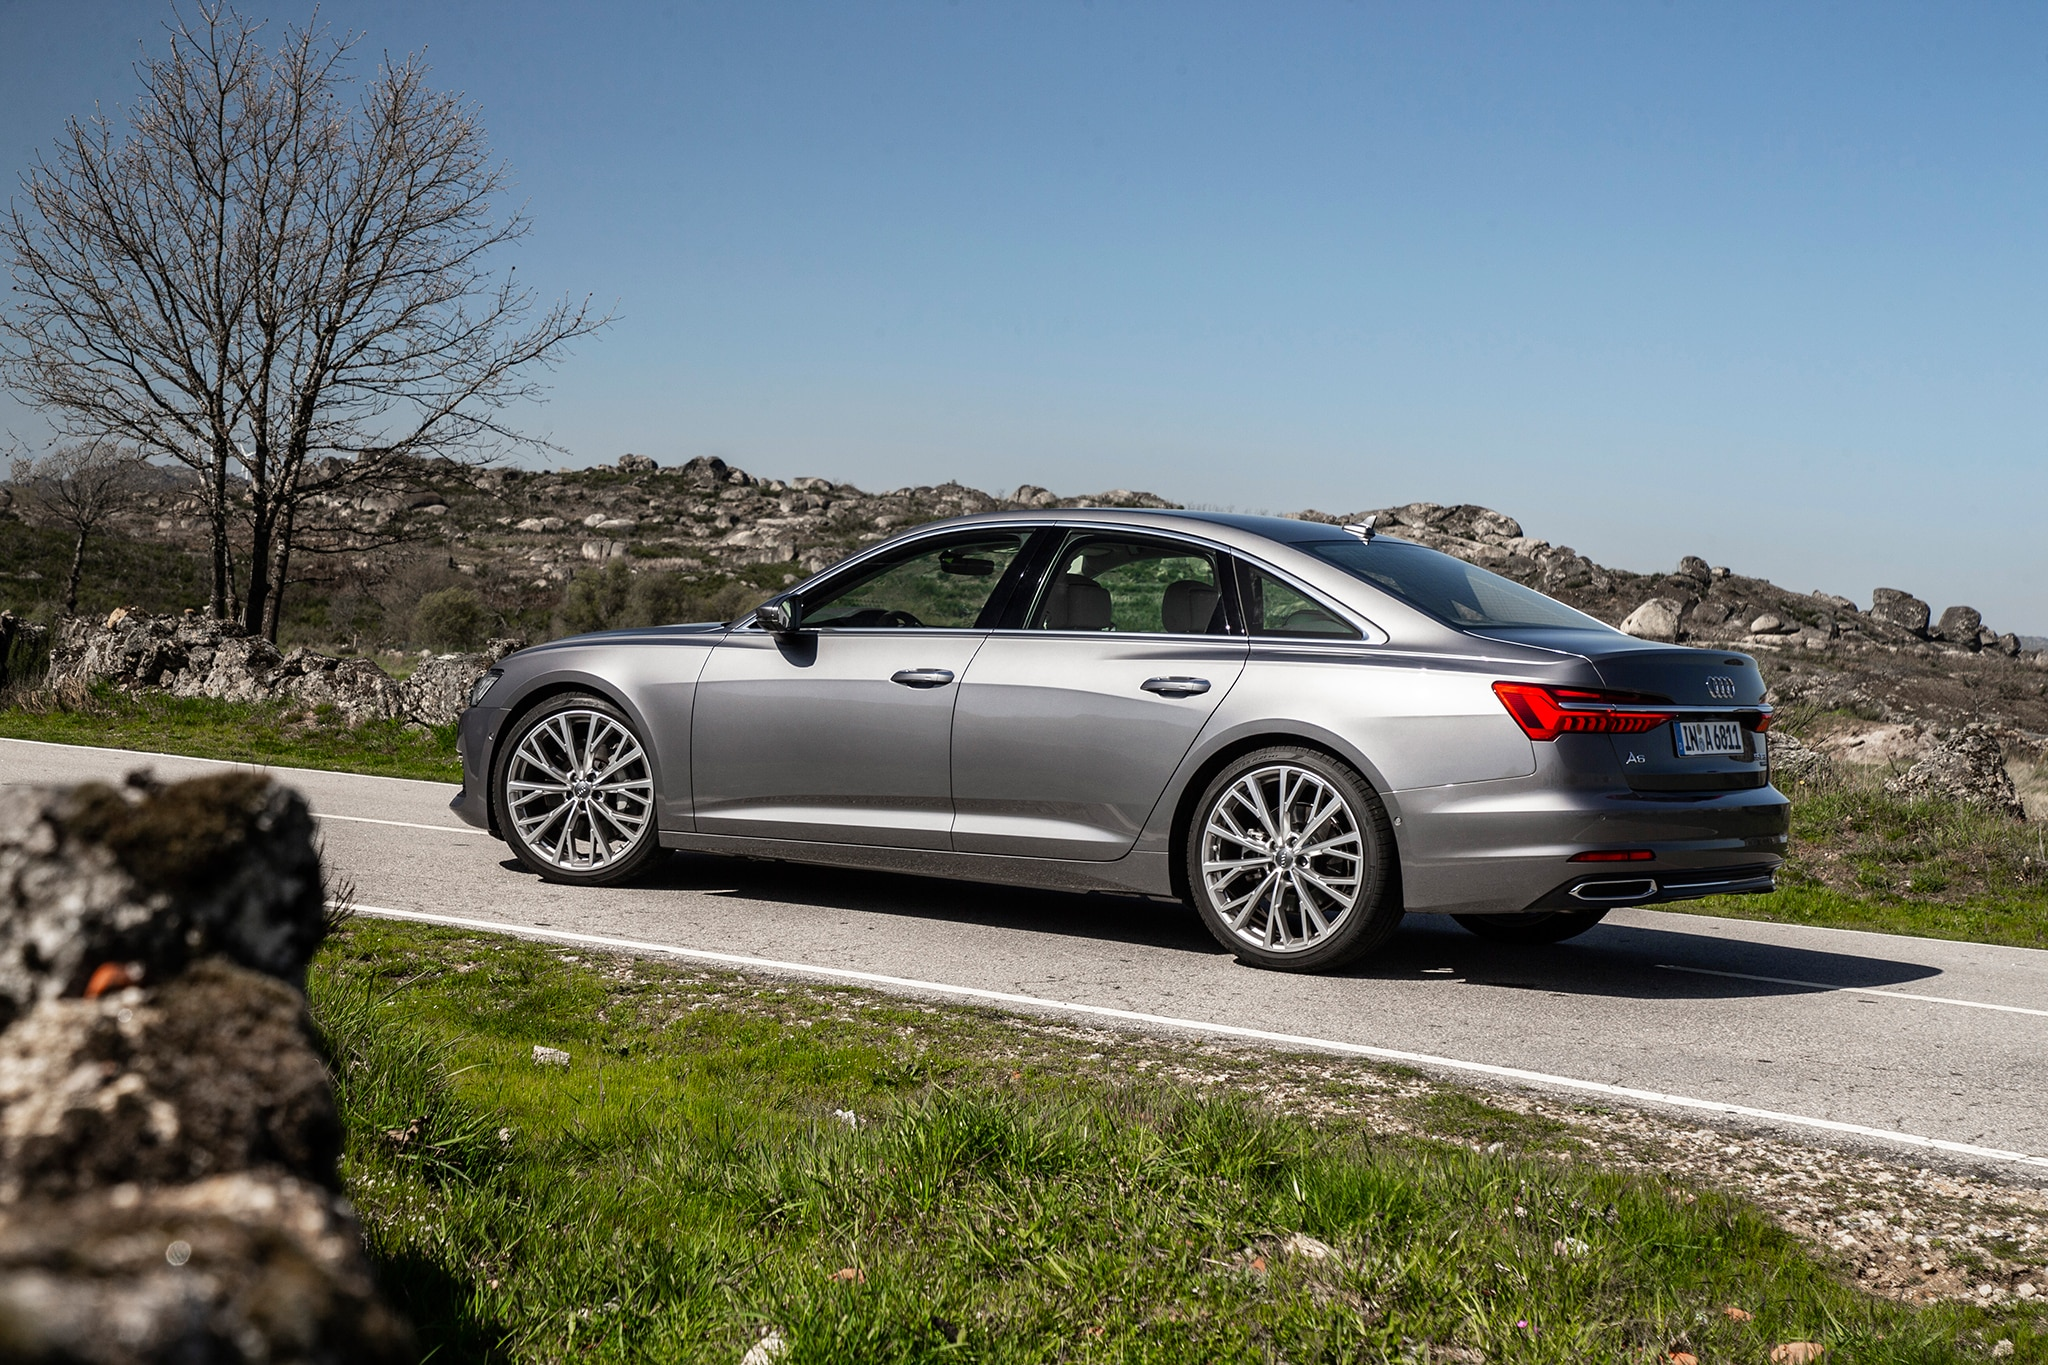 2019 Audi A6 First Drive Review | Automobile Magazine